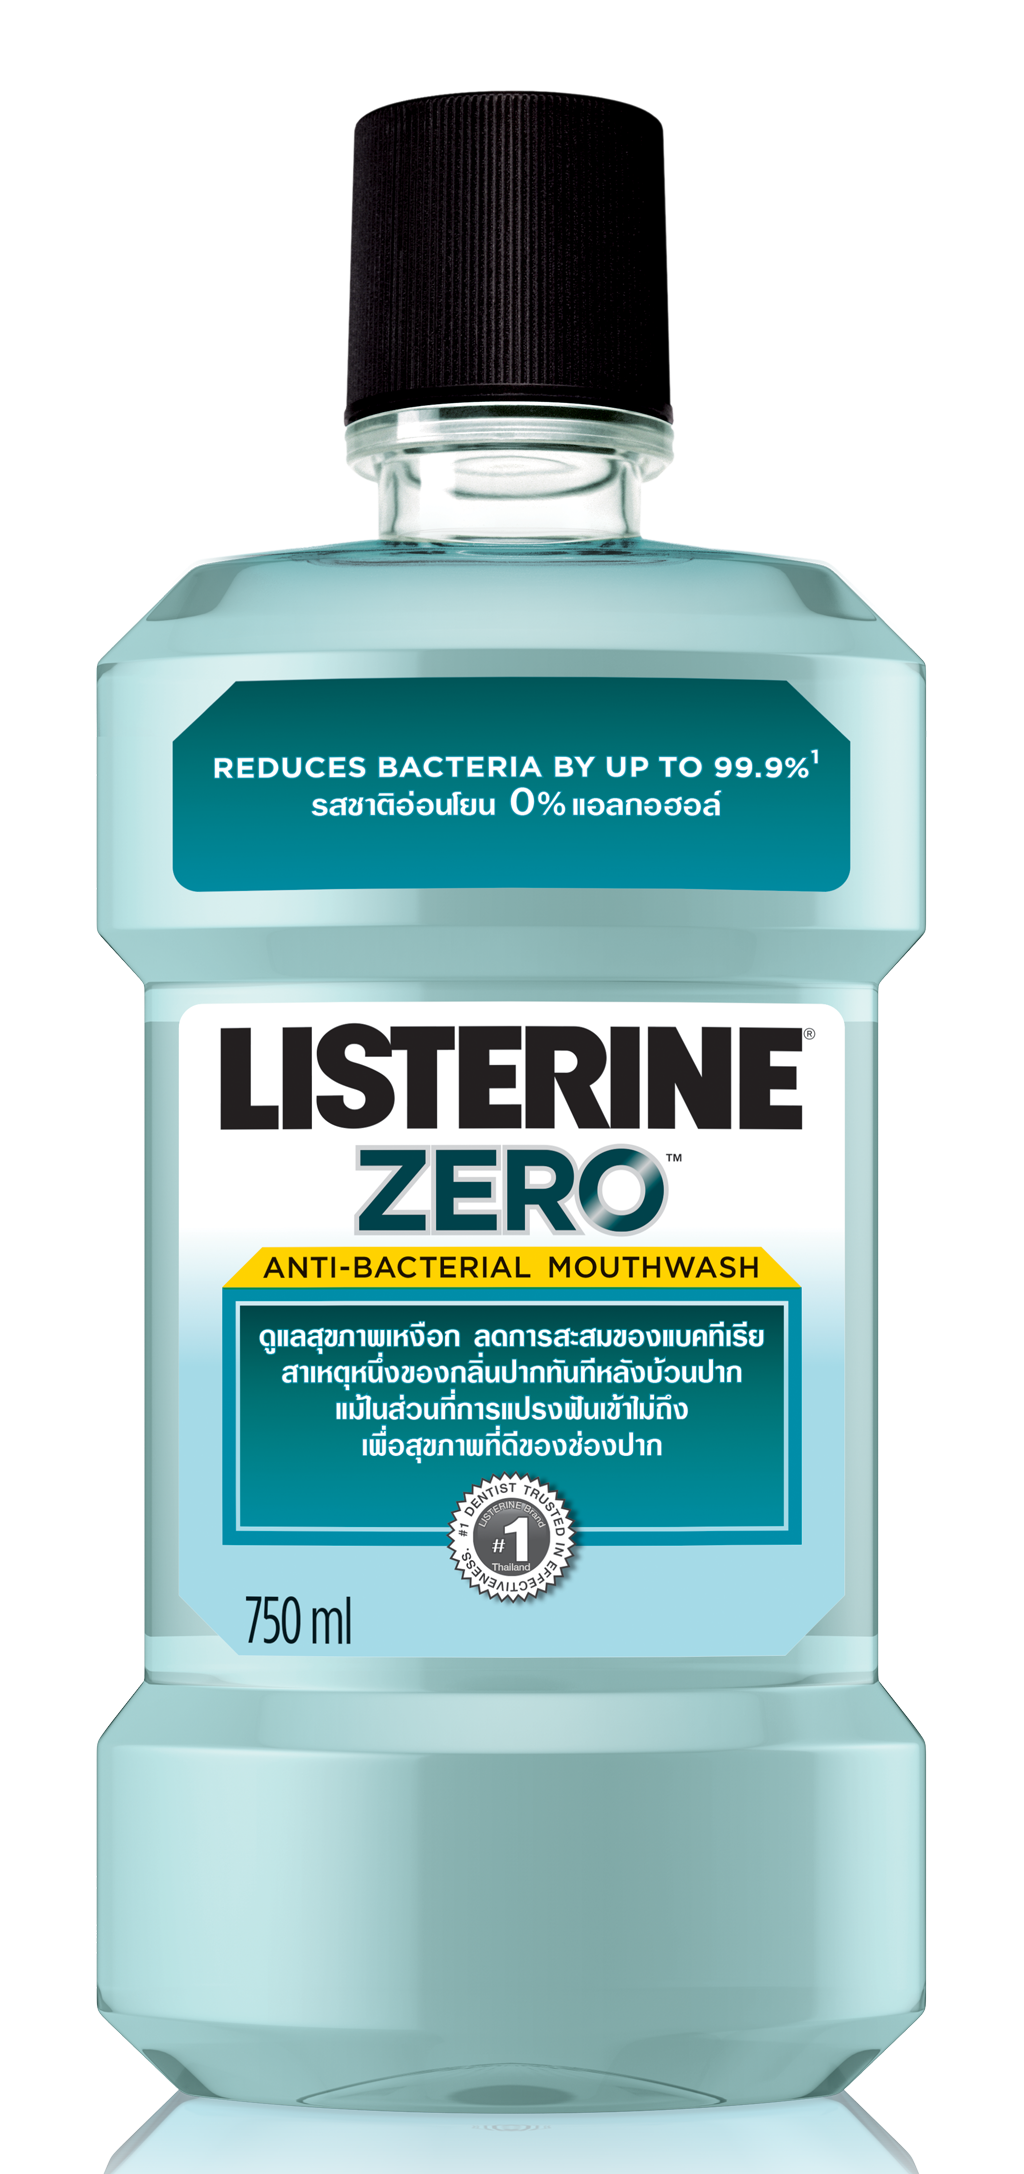 r02477-ls-zero-npi-packshot-750ml-packshot.png